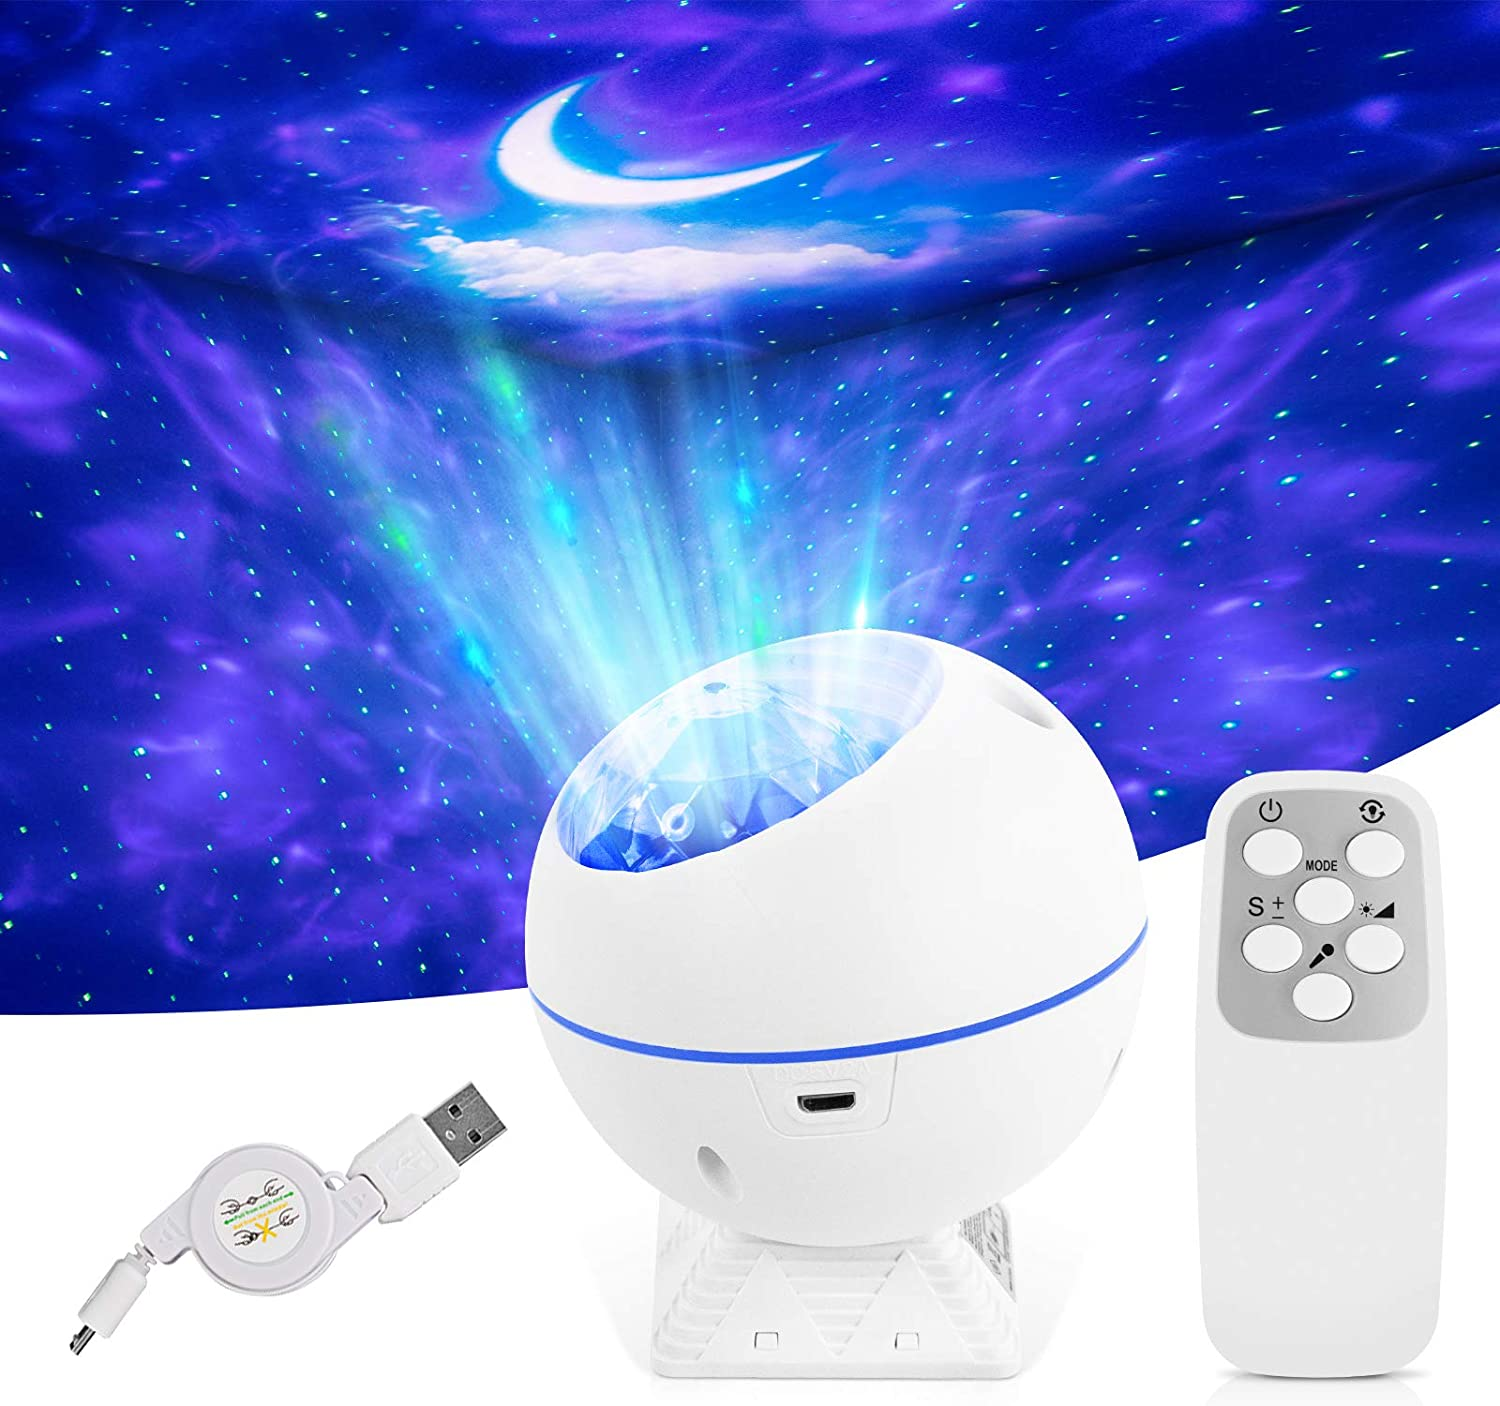 LED Night Light Projector 3 in 1 Galaxy Projector Sky Star Projector with Moon/Nebula Cloud/Star, Home Theater Lighting, or Bedroom Night Light Mood Ambiance